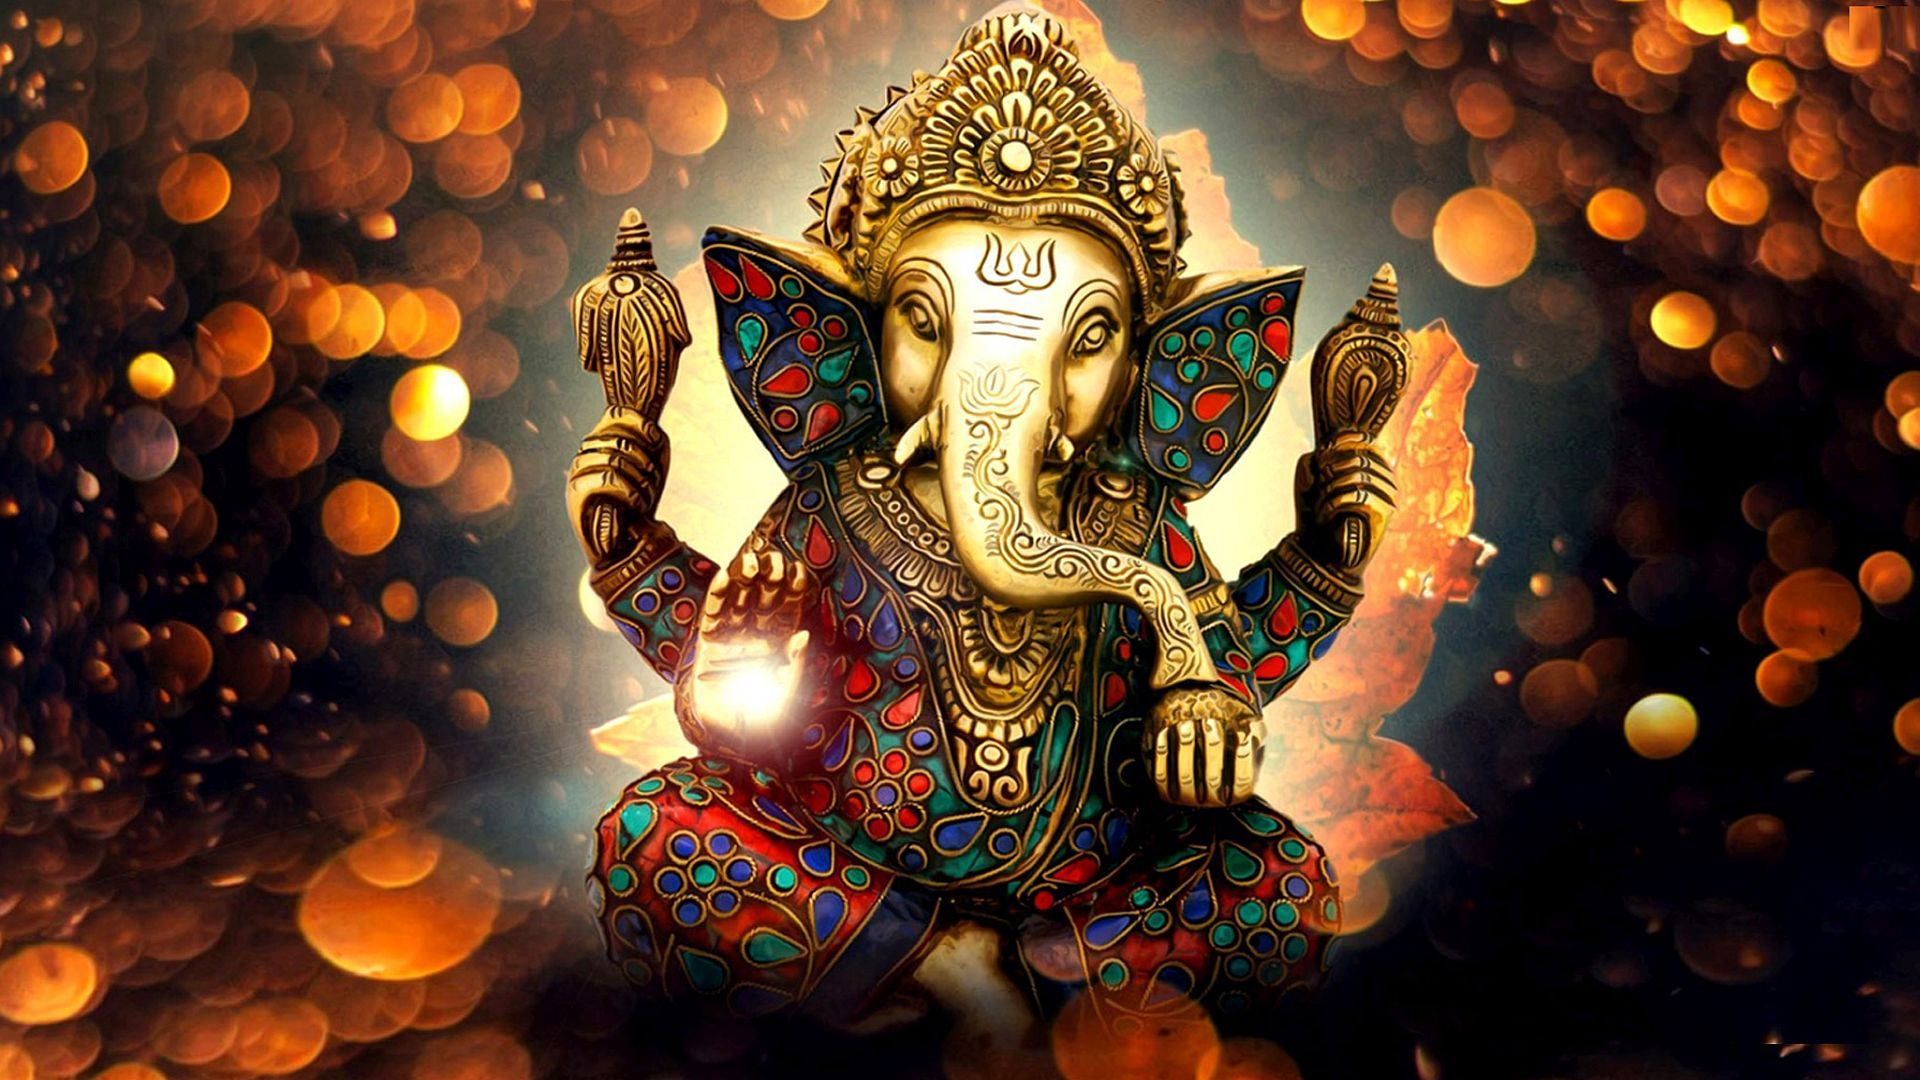 Download Lord Ganesha Hd Wallpapers 1080P For Pc